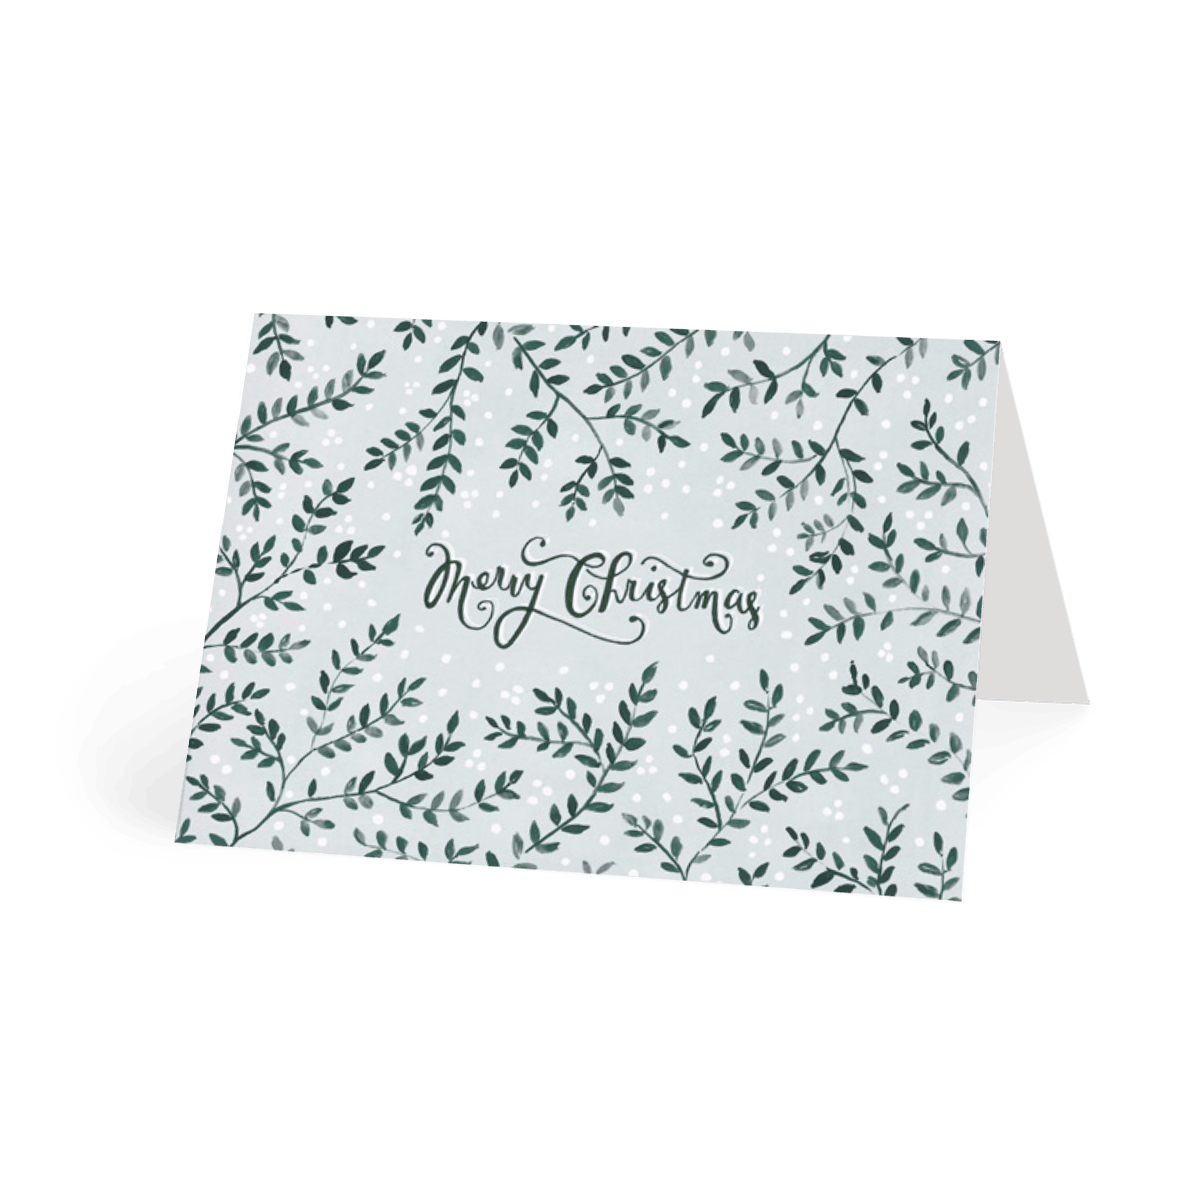 Https%3a%2f%2fwww.papier.com%2fproduct image%2f30149%2f14%2fchristmas snow berries 7604 front 1509019532.png?ixlib=rb 1.1